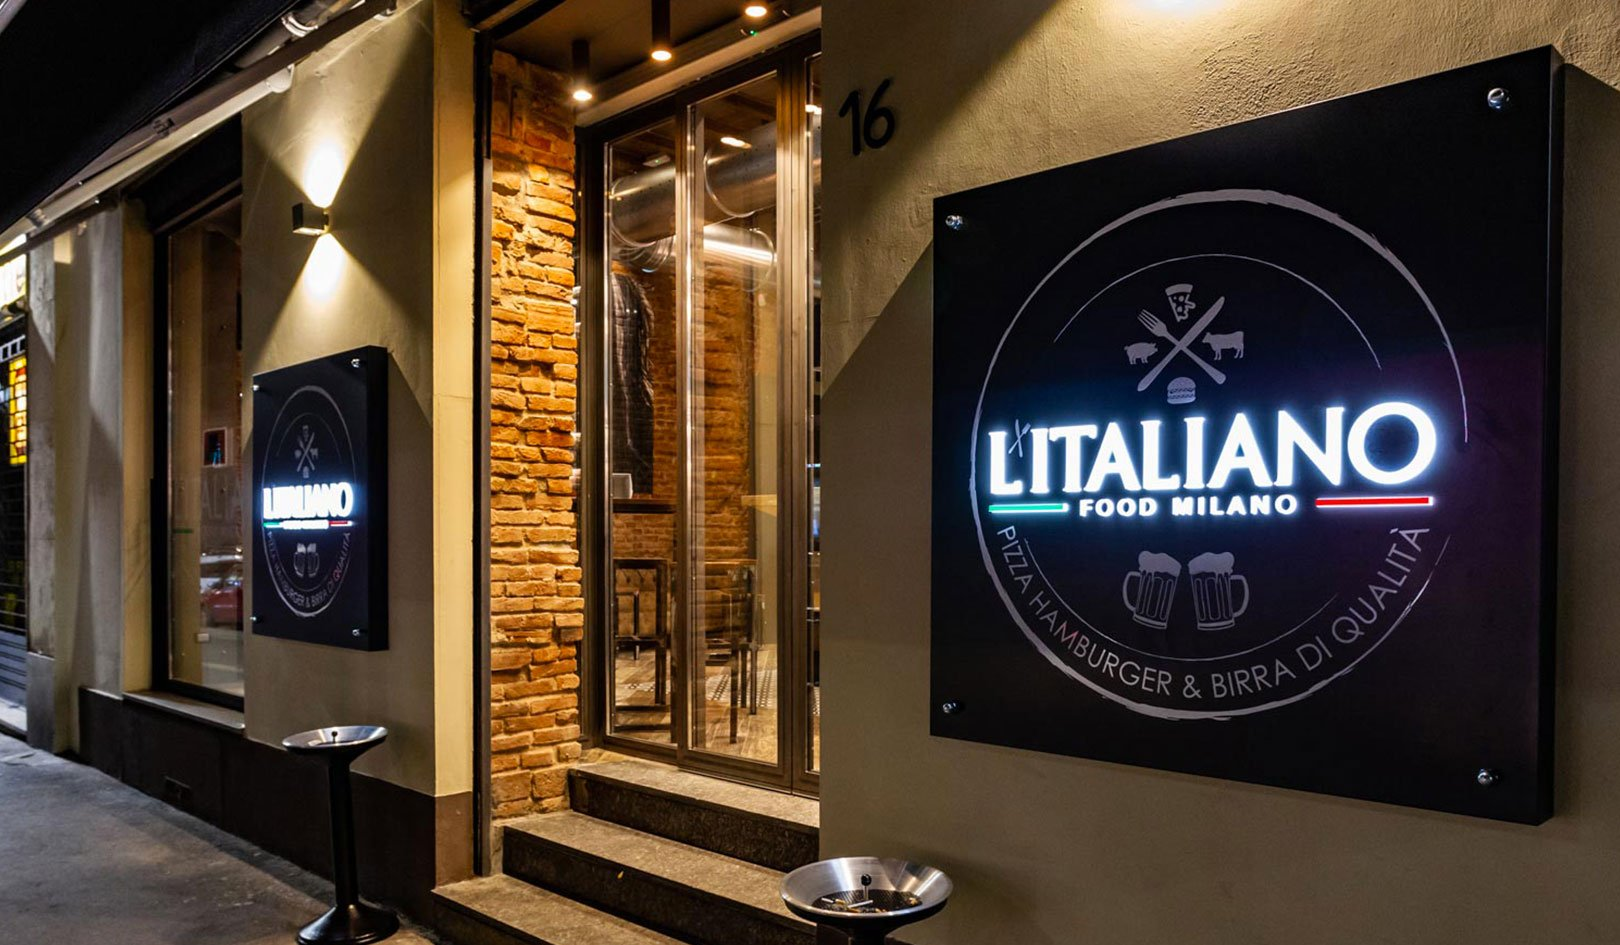 L'Italiano Food Milano